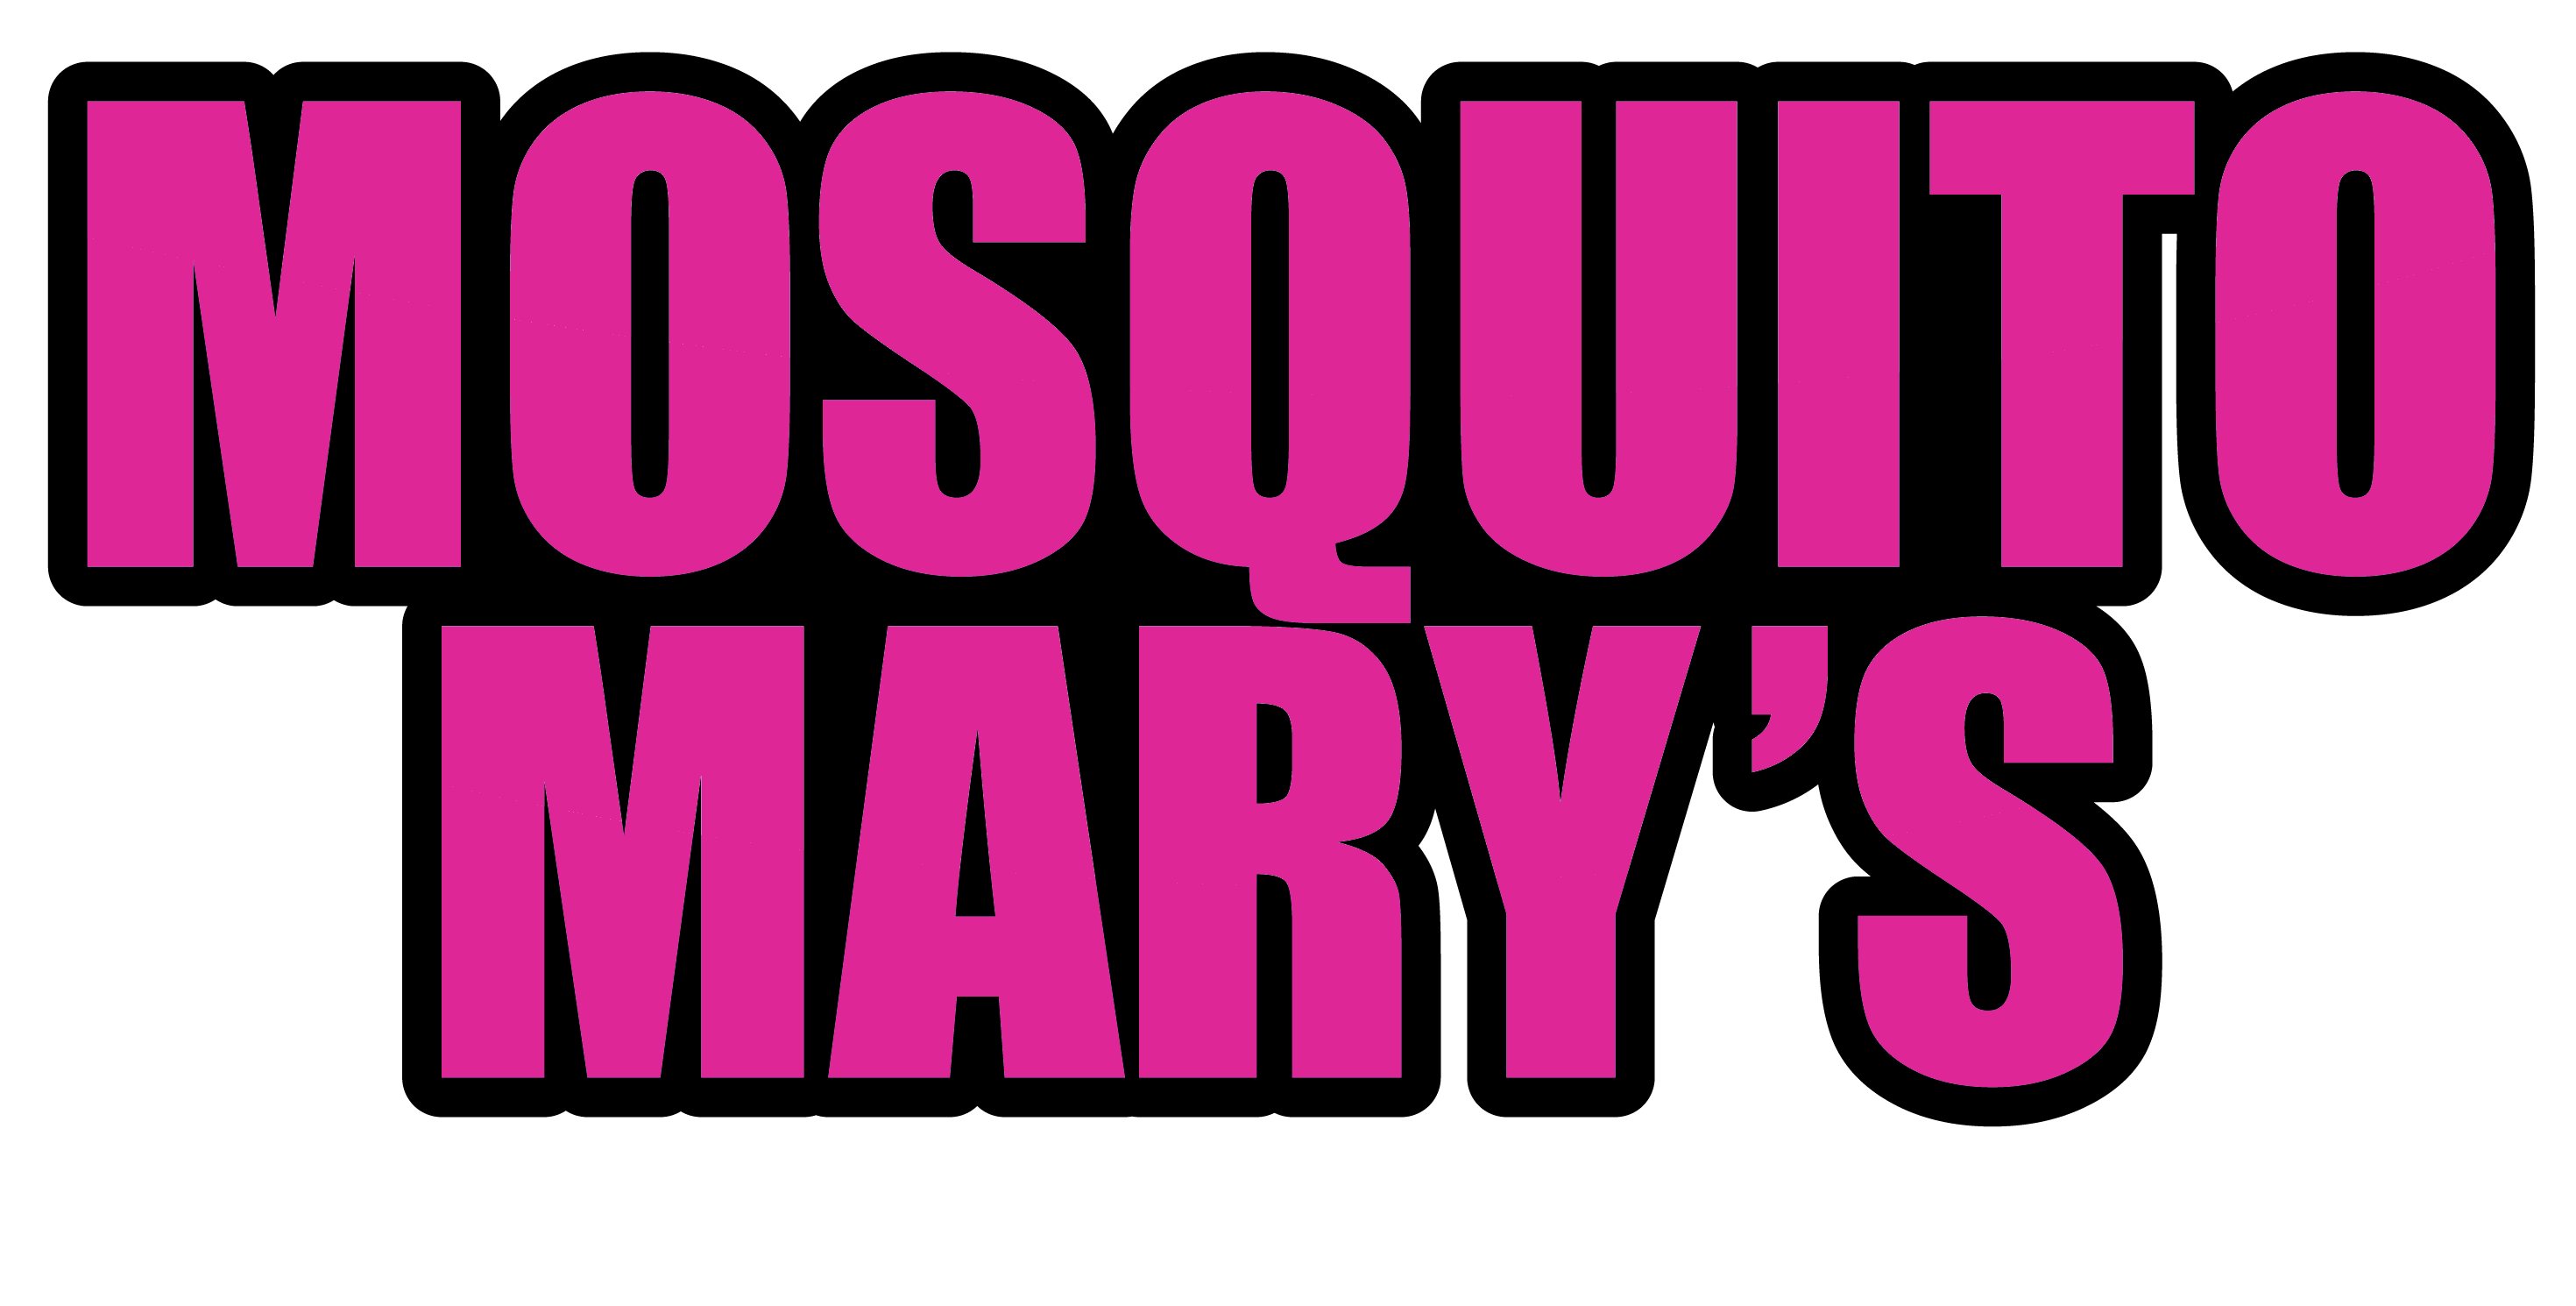 Mosquito Mary's offers effective tick and mosquito control services to enable the residents of New England to rest comfortably in their yards